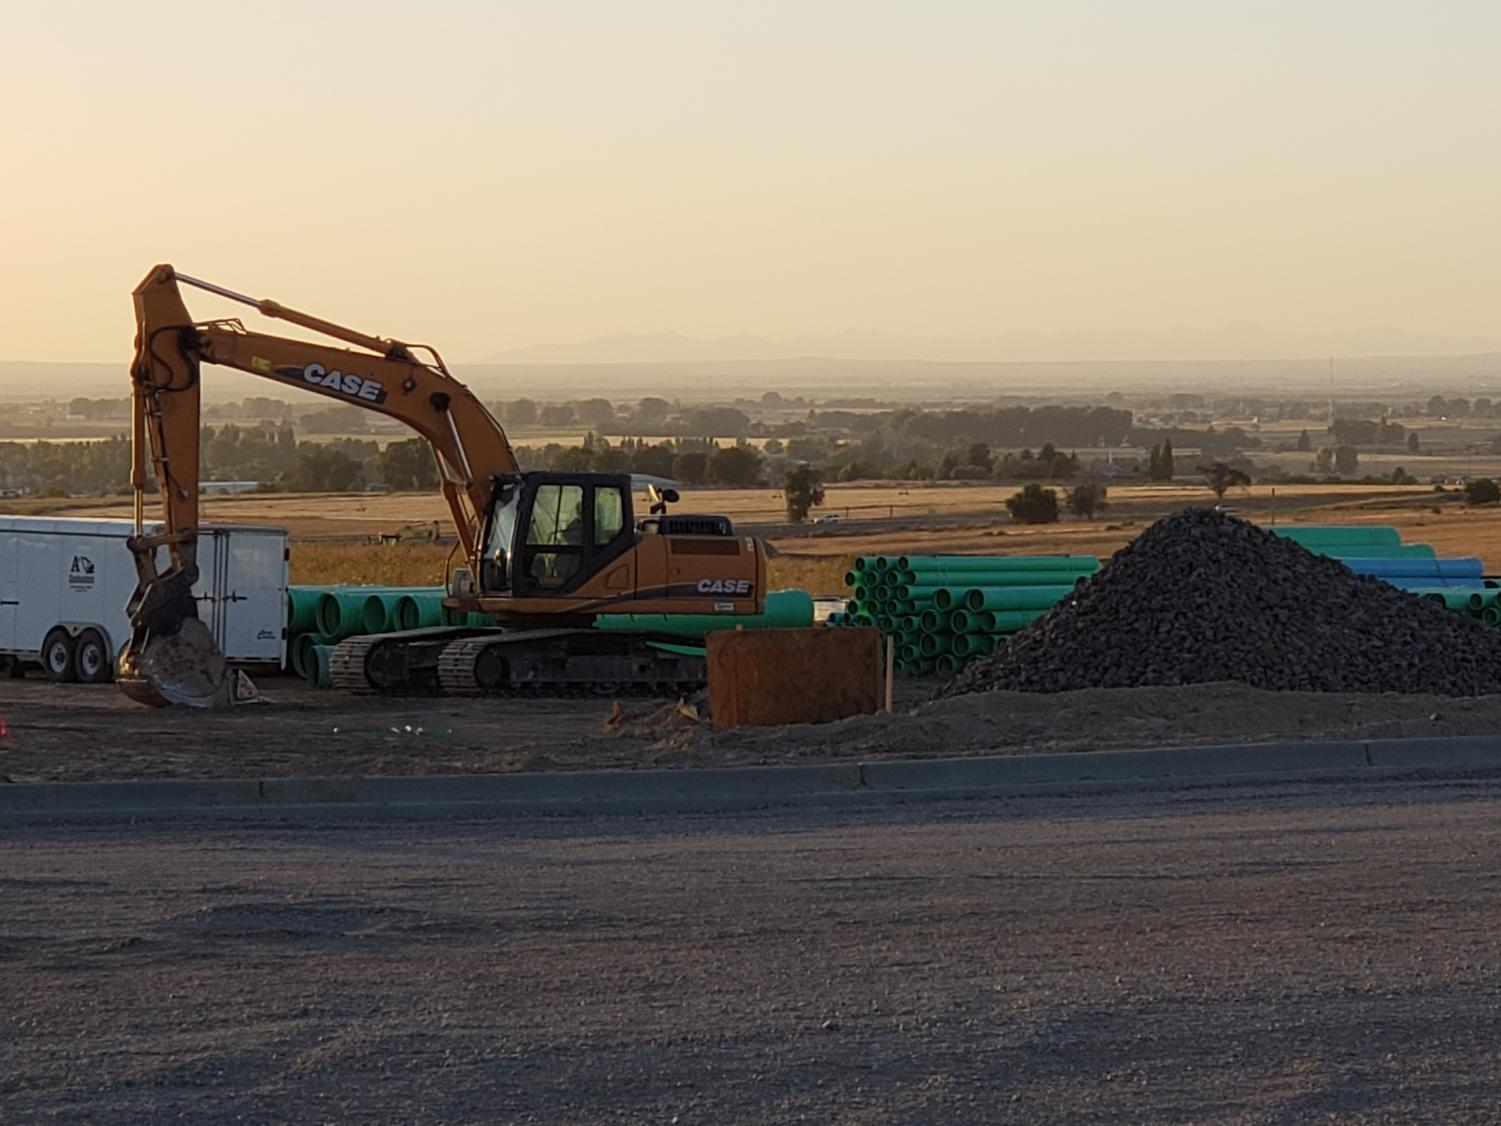 Construction on the NorthGate Development is still continuing as more vehicles and workers appear at the site.